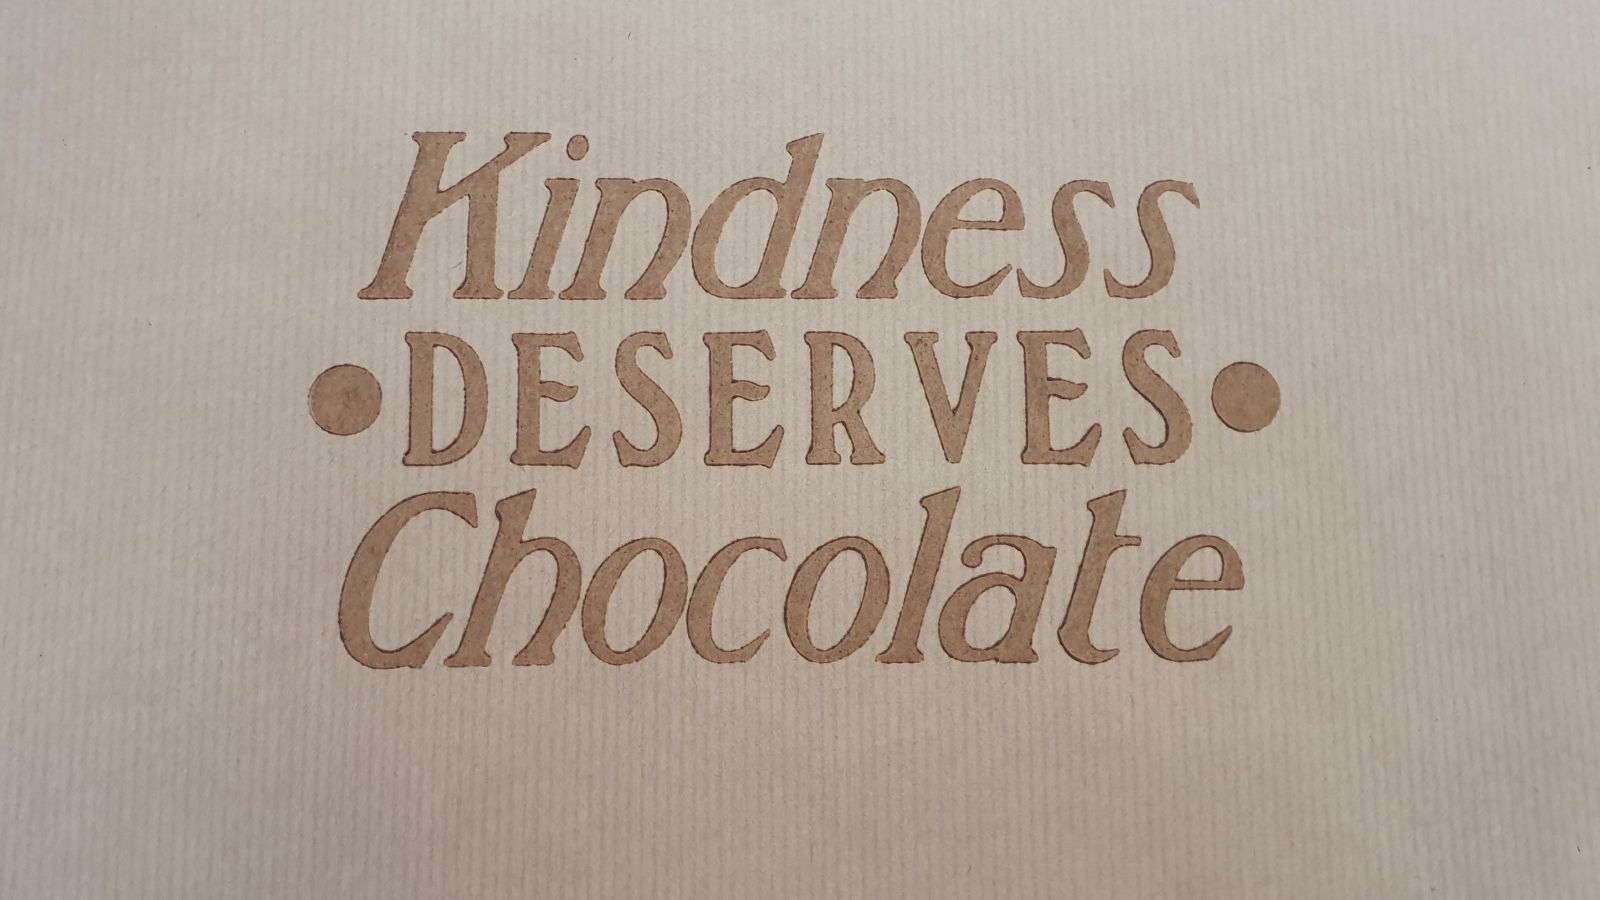 'Kindness deserves chocolate' printed with chocolate as ink.